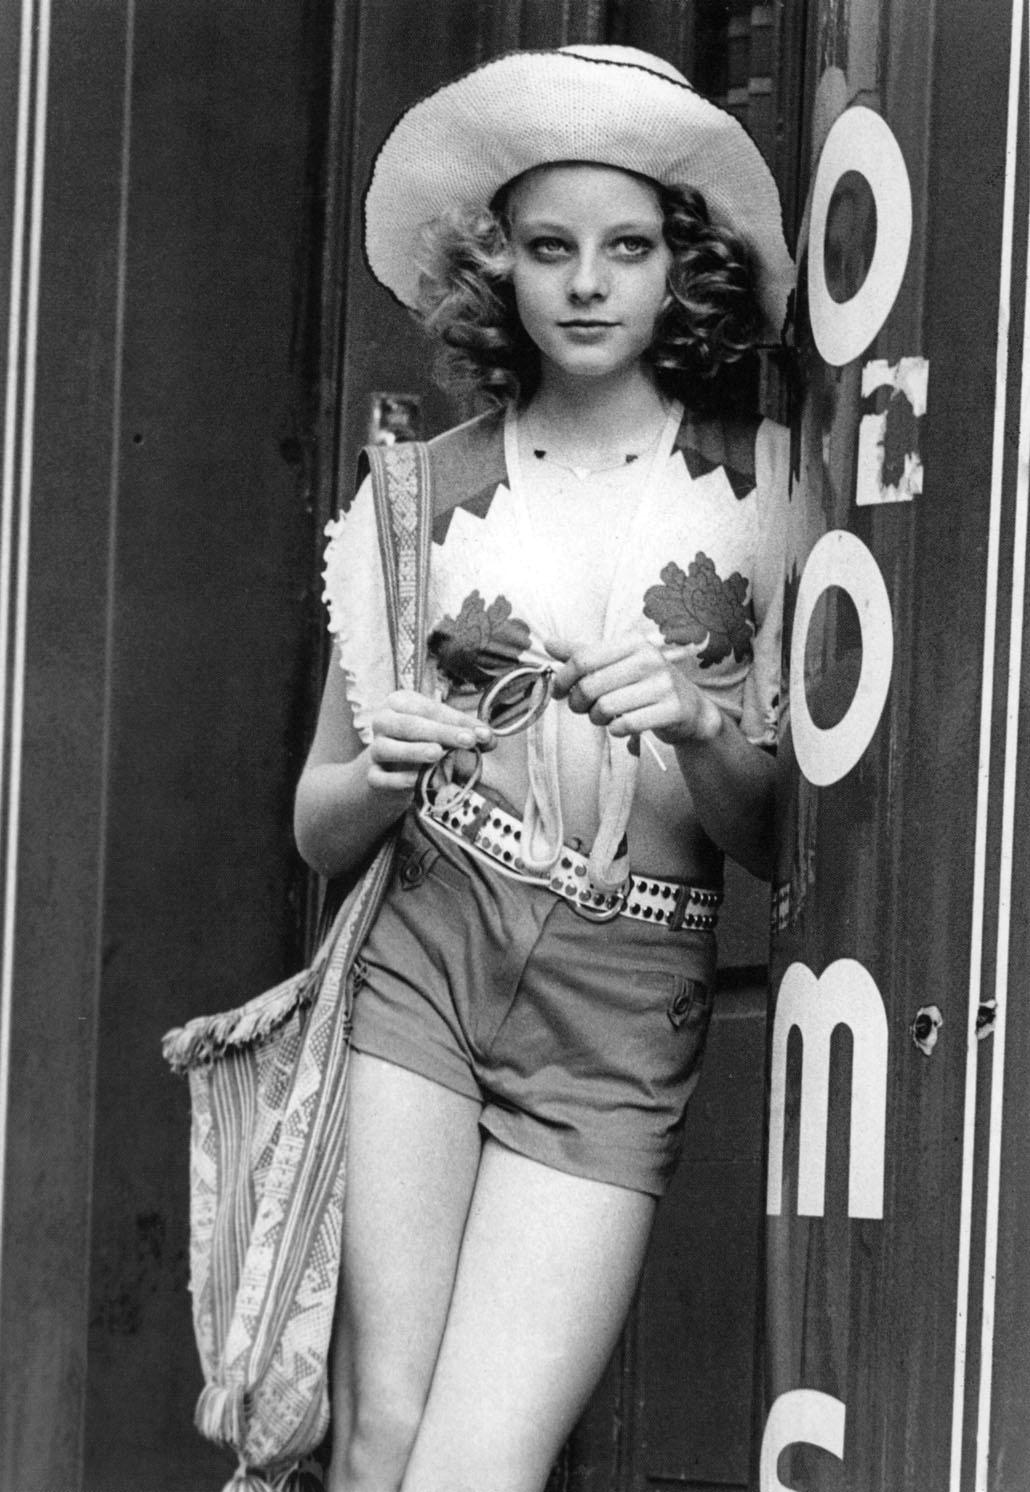 Foster, in a wide brimmed straw hat, shorts, and a string-tied blouse, leaning in a doorway